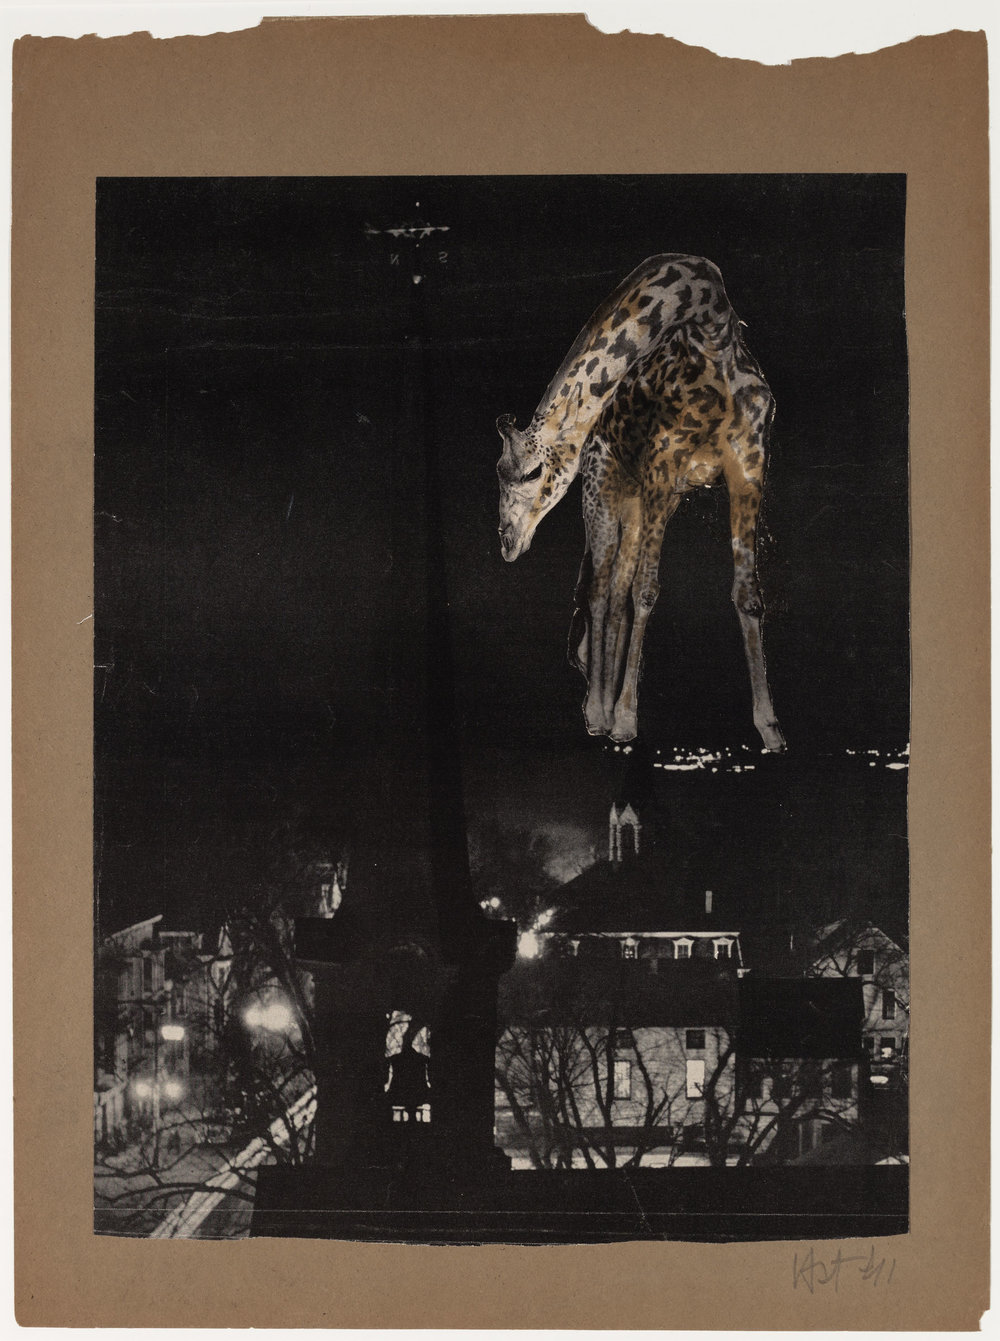 Hedda Sterne,  Untitled , 1941, Collage, 16 in. x 12 7/8 in.